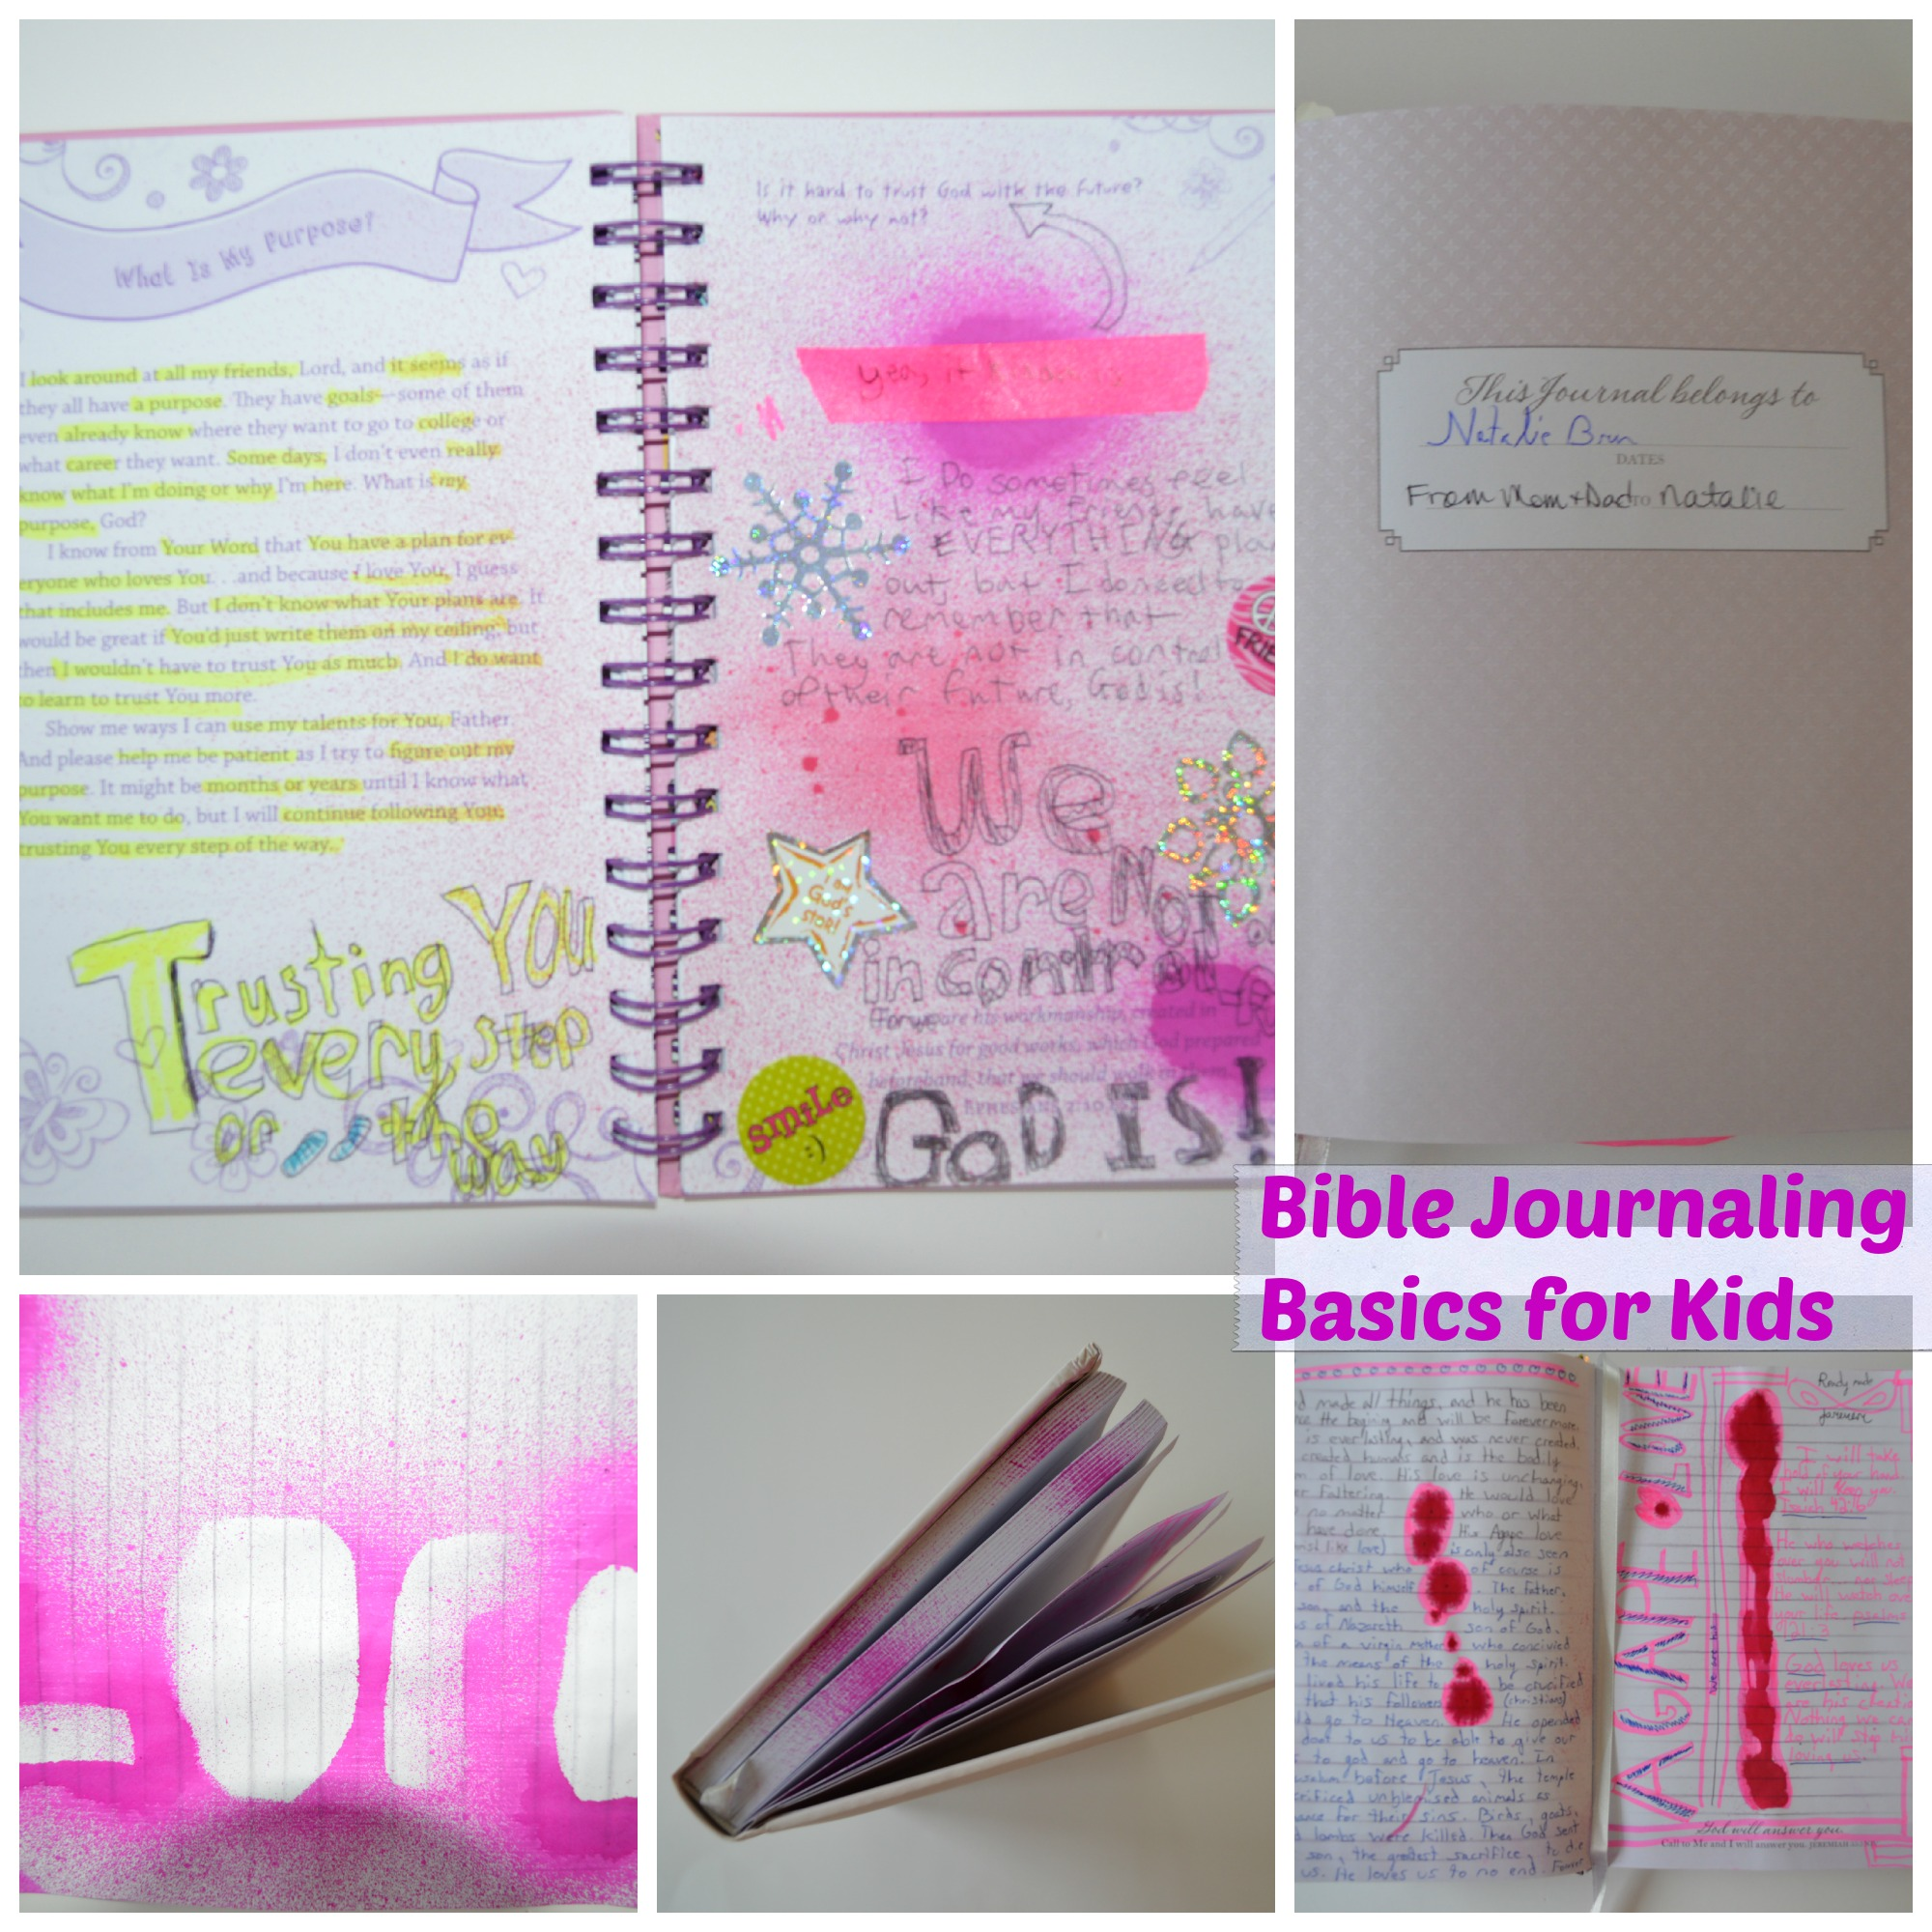 Bible Journaling Basics for Kids